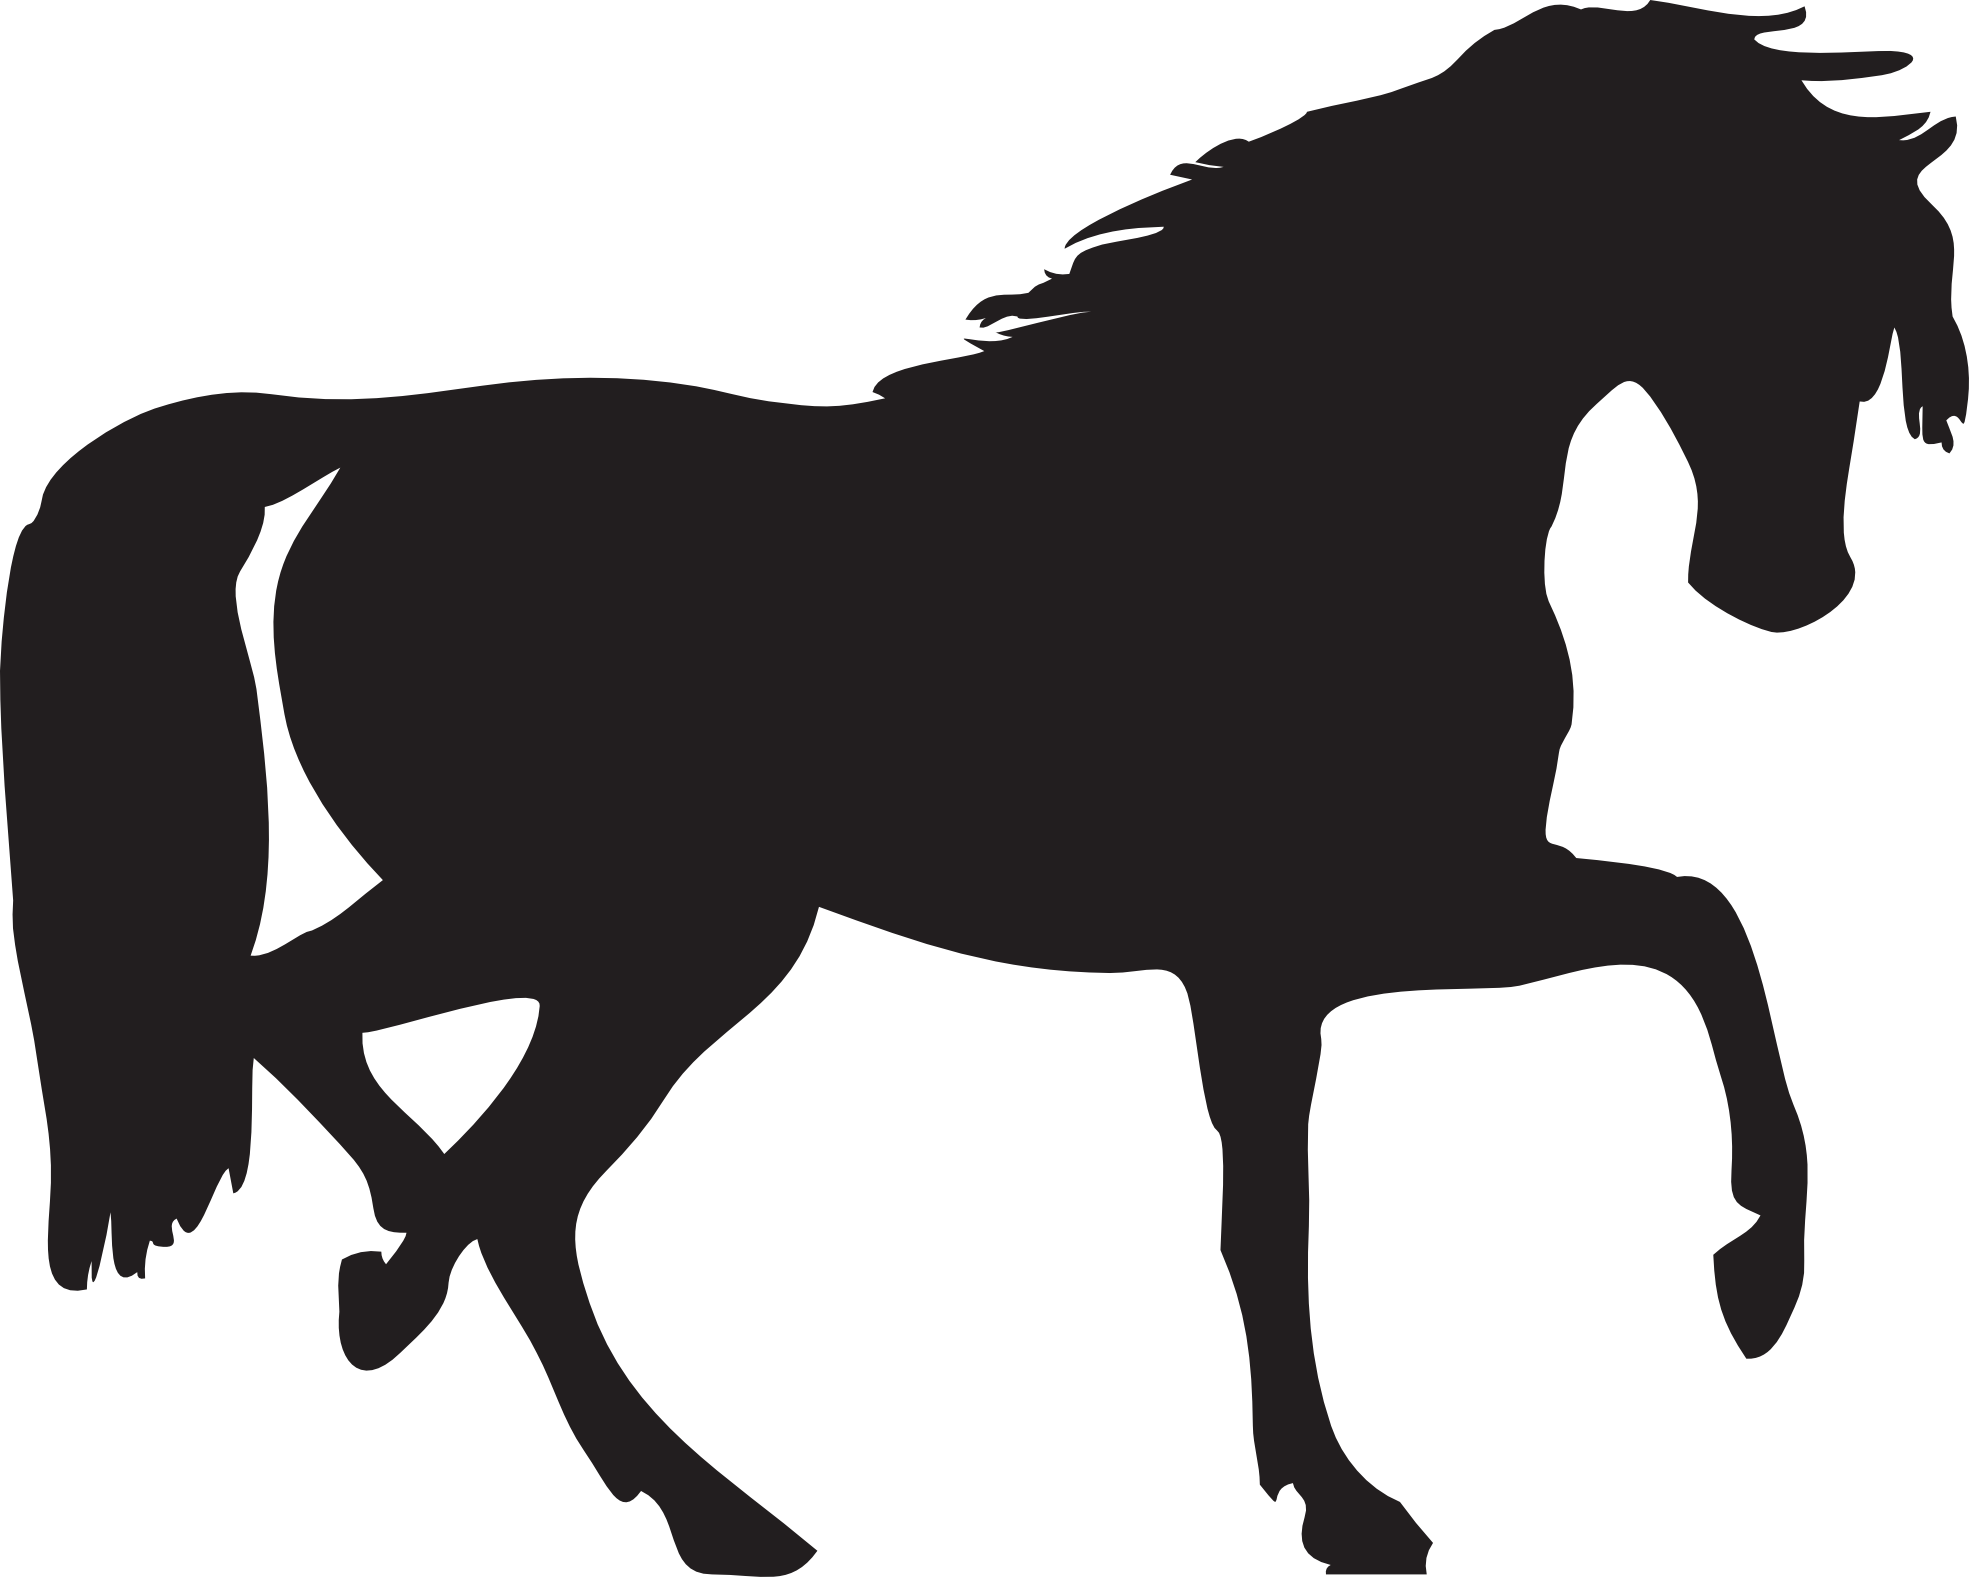 Horse heart clipart clipart royalty free library Horse Silhouette Two | Isolated Stock Photo by noBACKS.com clipart royalty free library